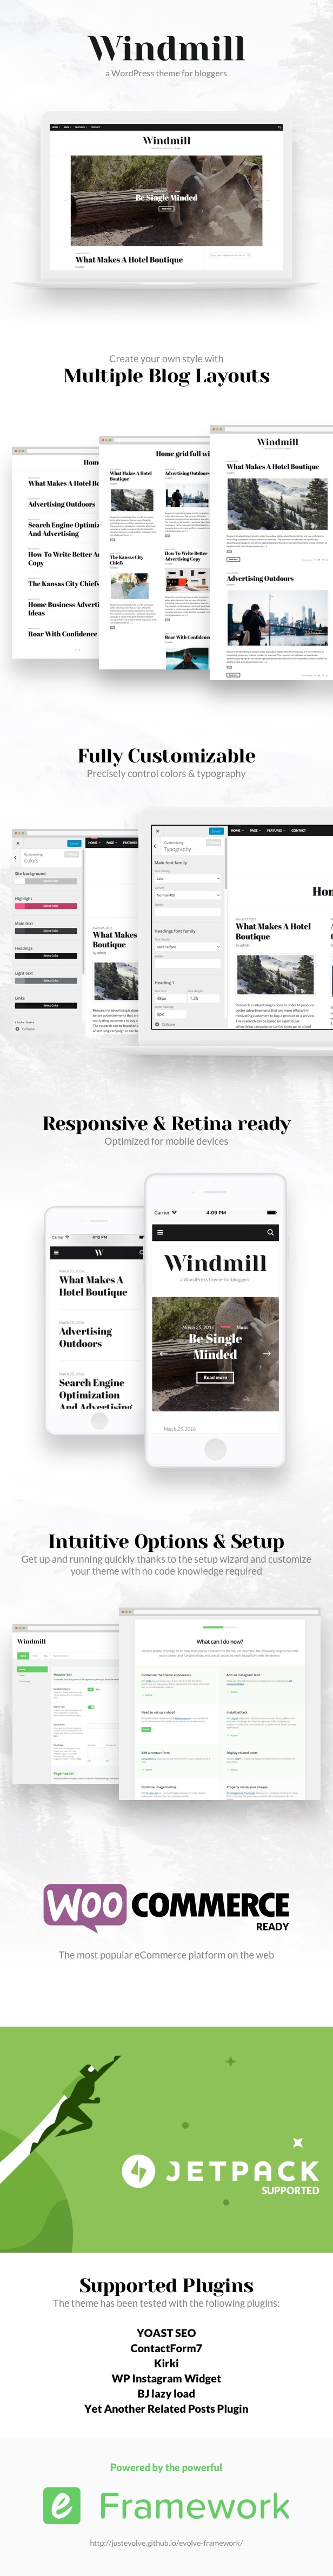 Windmill - A Responsive WordPress Blog Theme